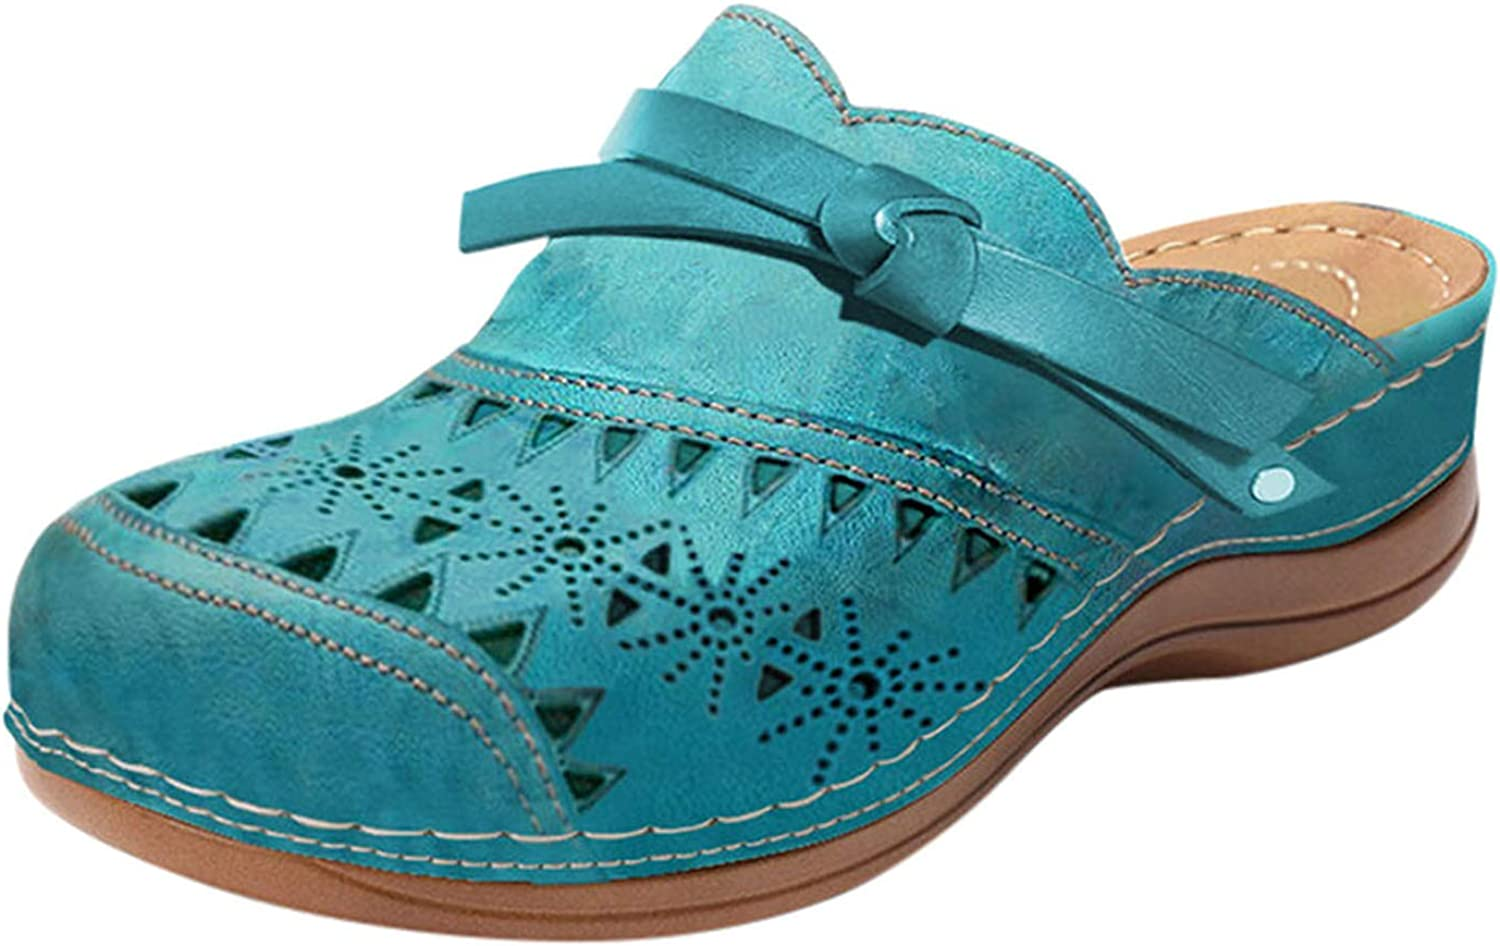 FAMOORE Women's Fashion Casual Platform Hollow Carved Round Head Sandals And Slippers